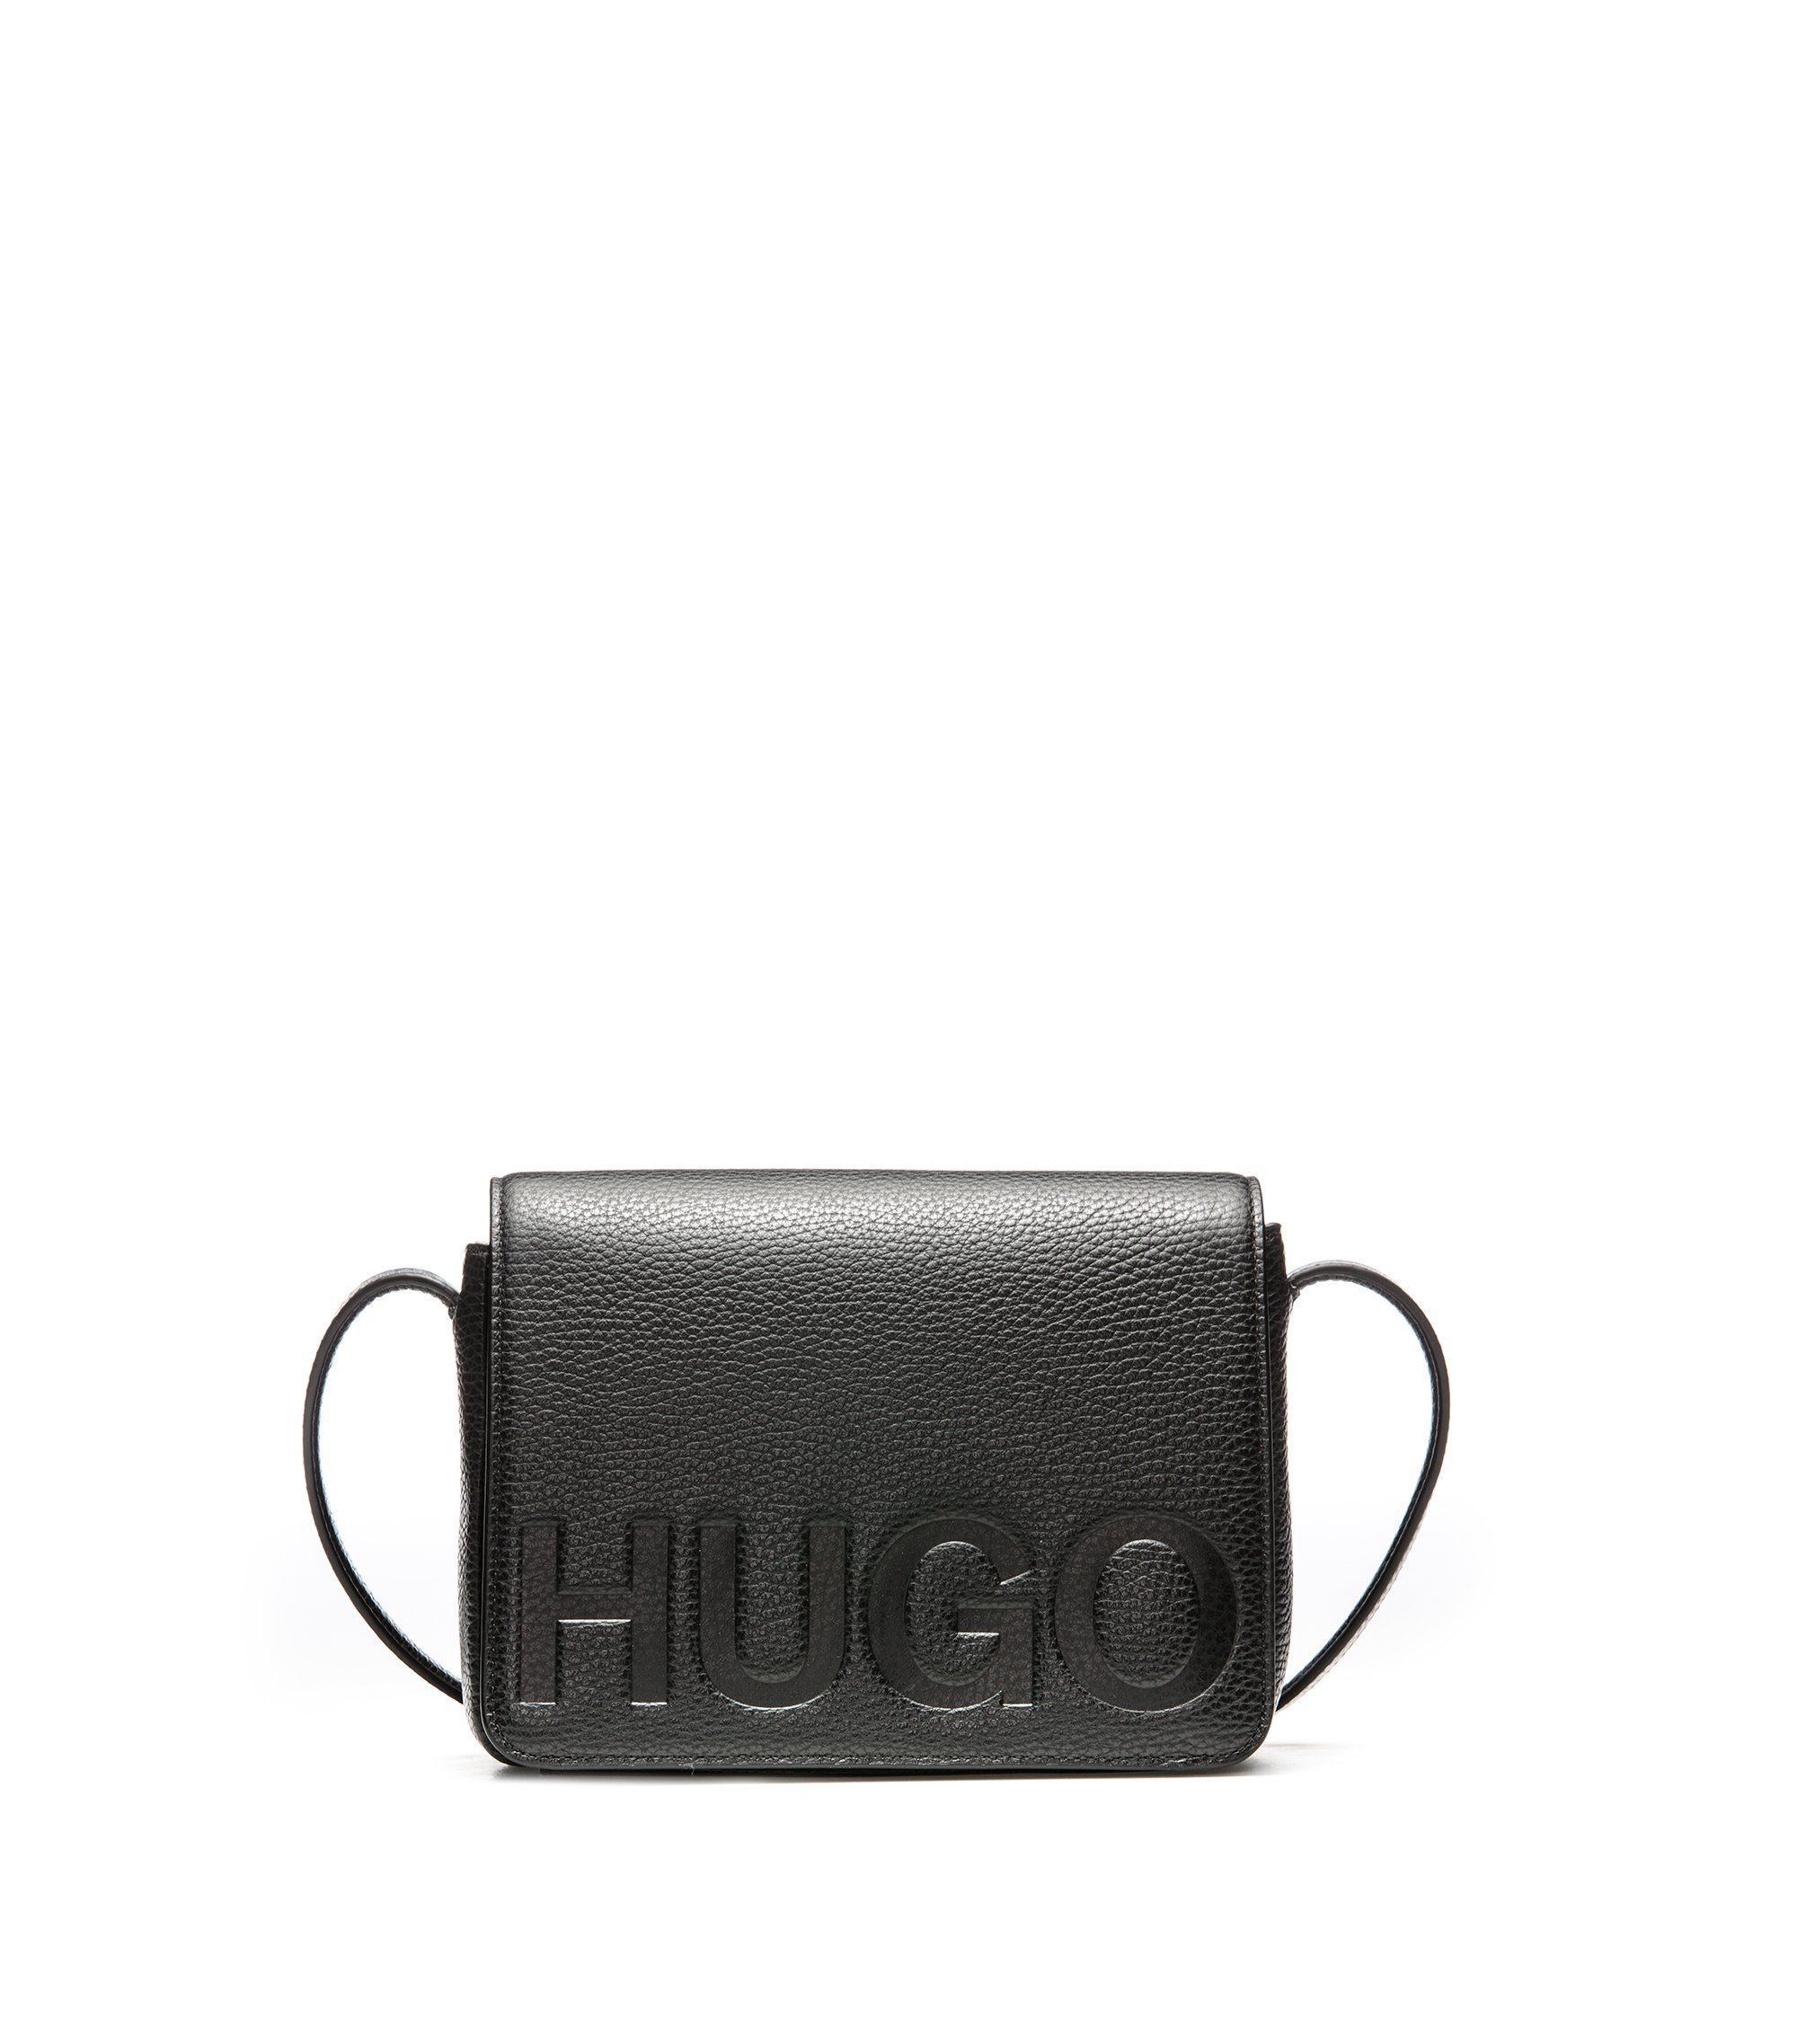 Leather cross-body bag with embossed logo, Black